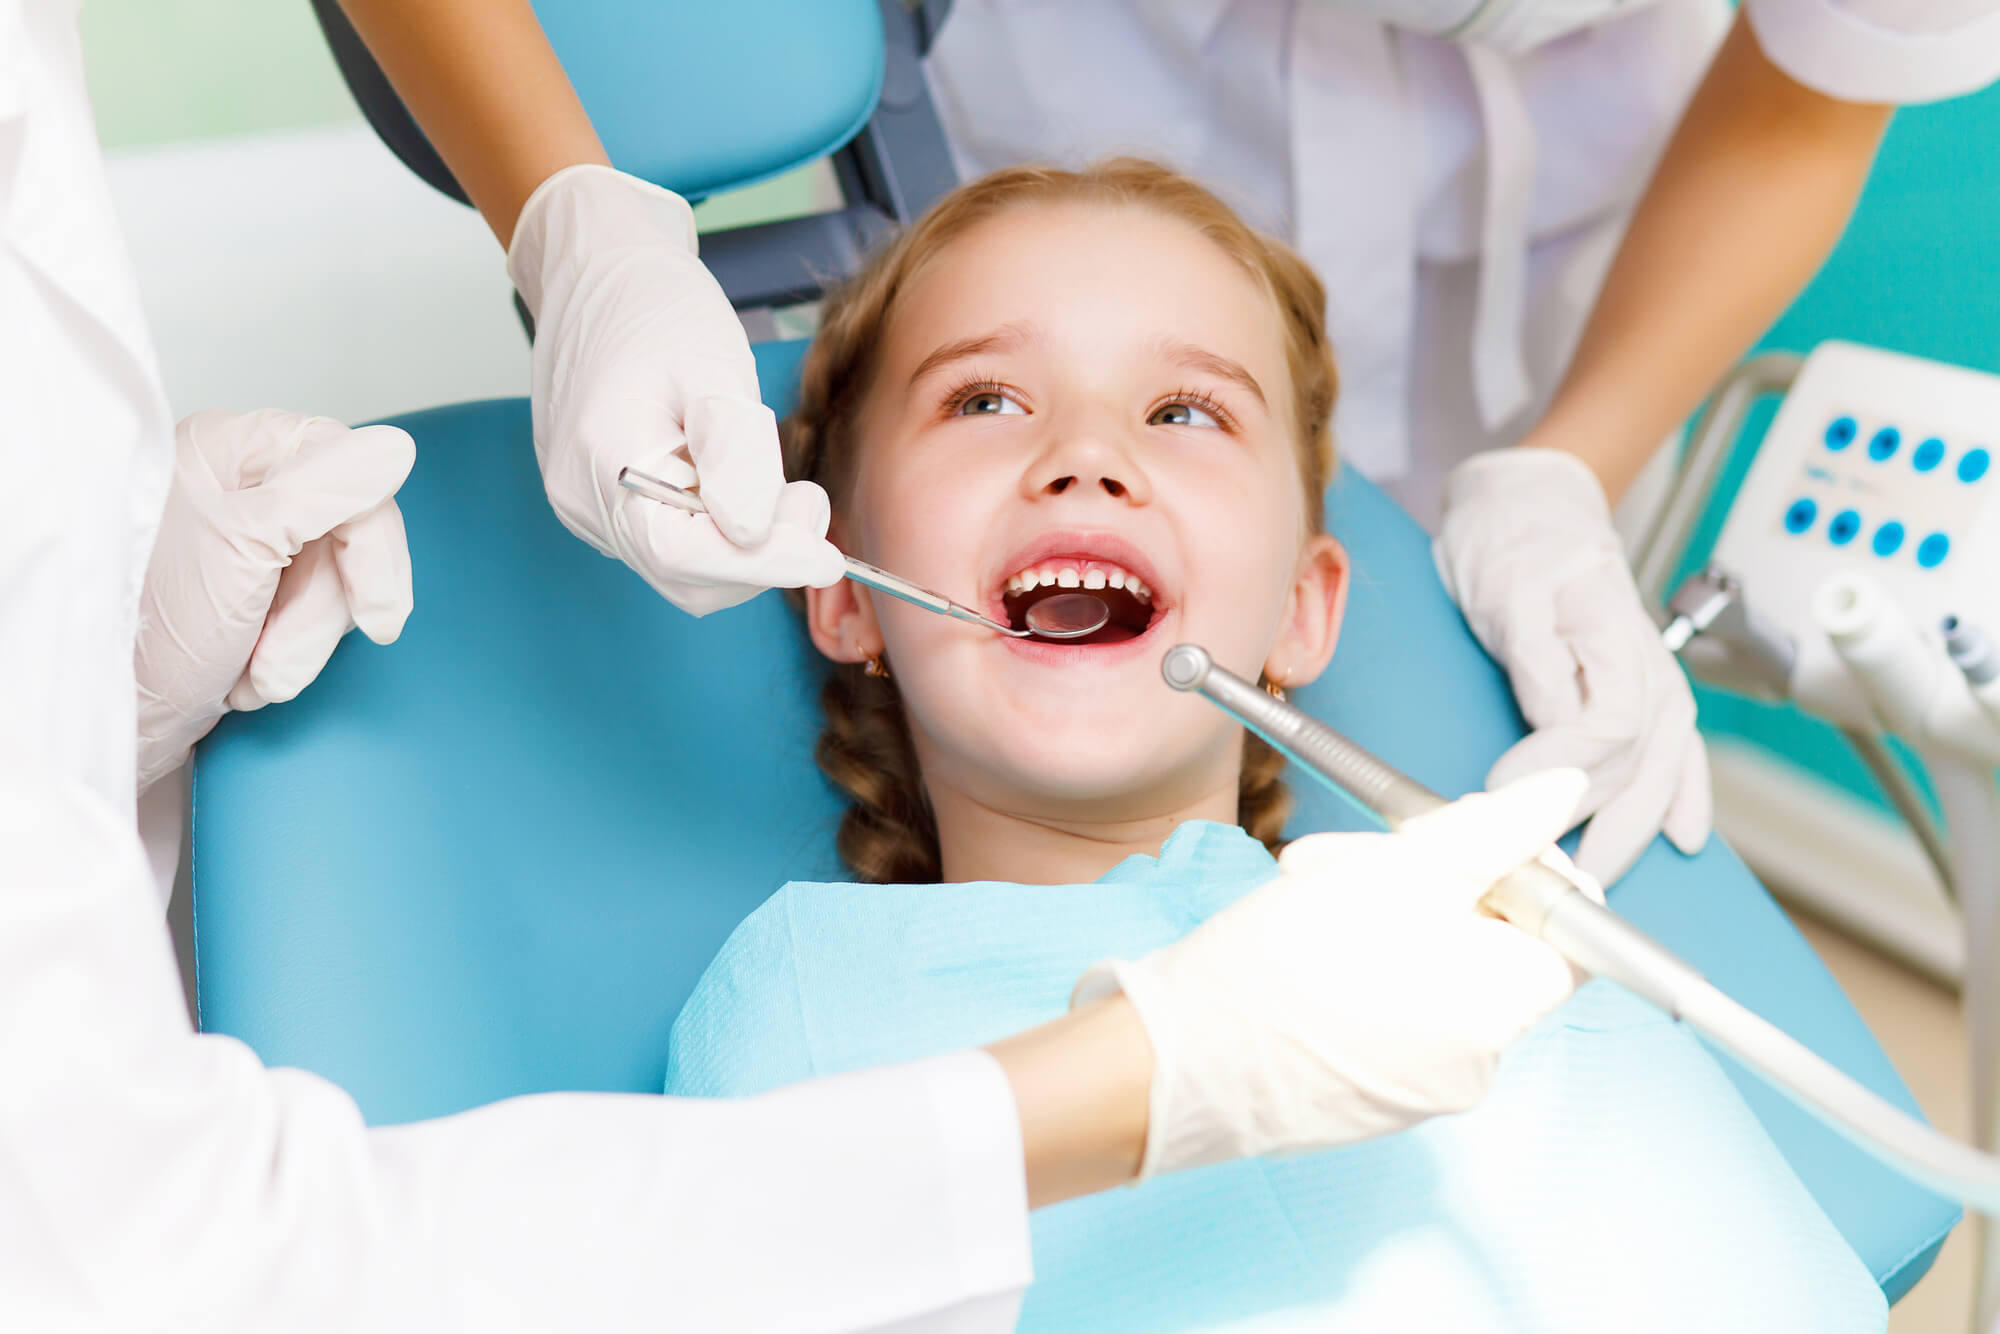 who offers a dentist in boca raton?